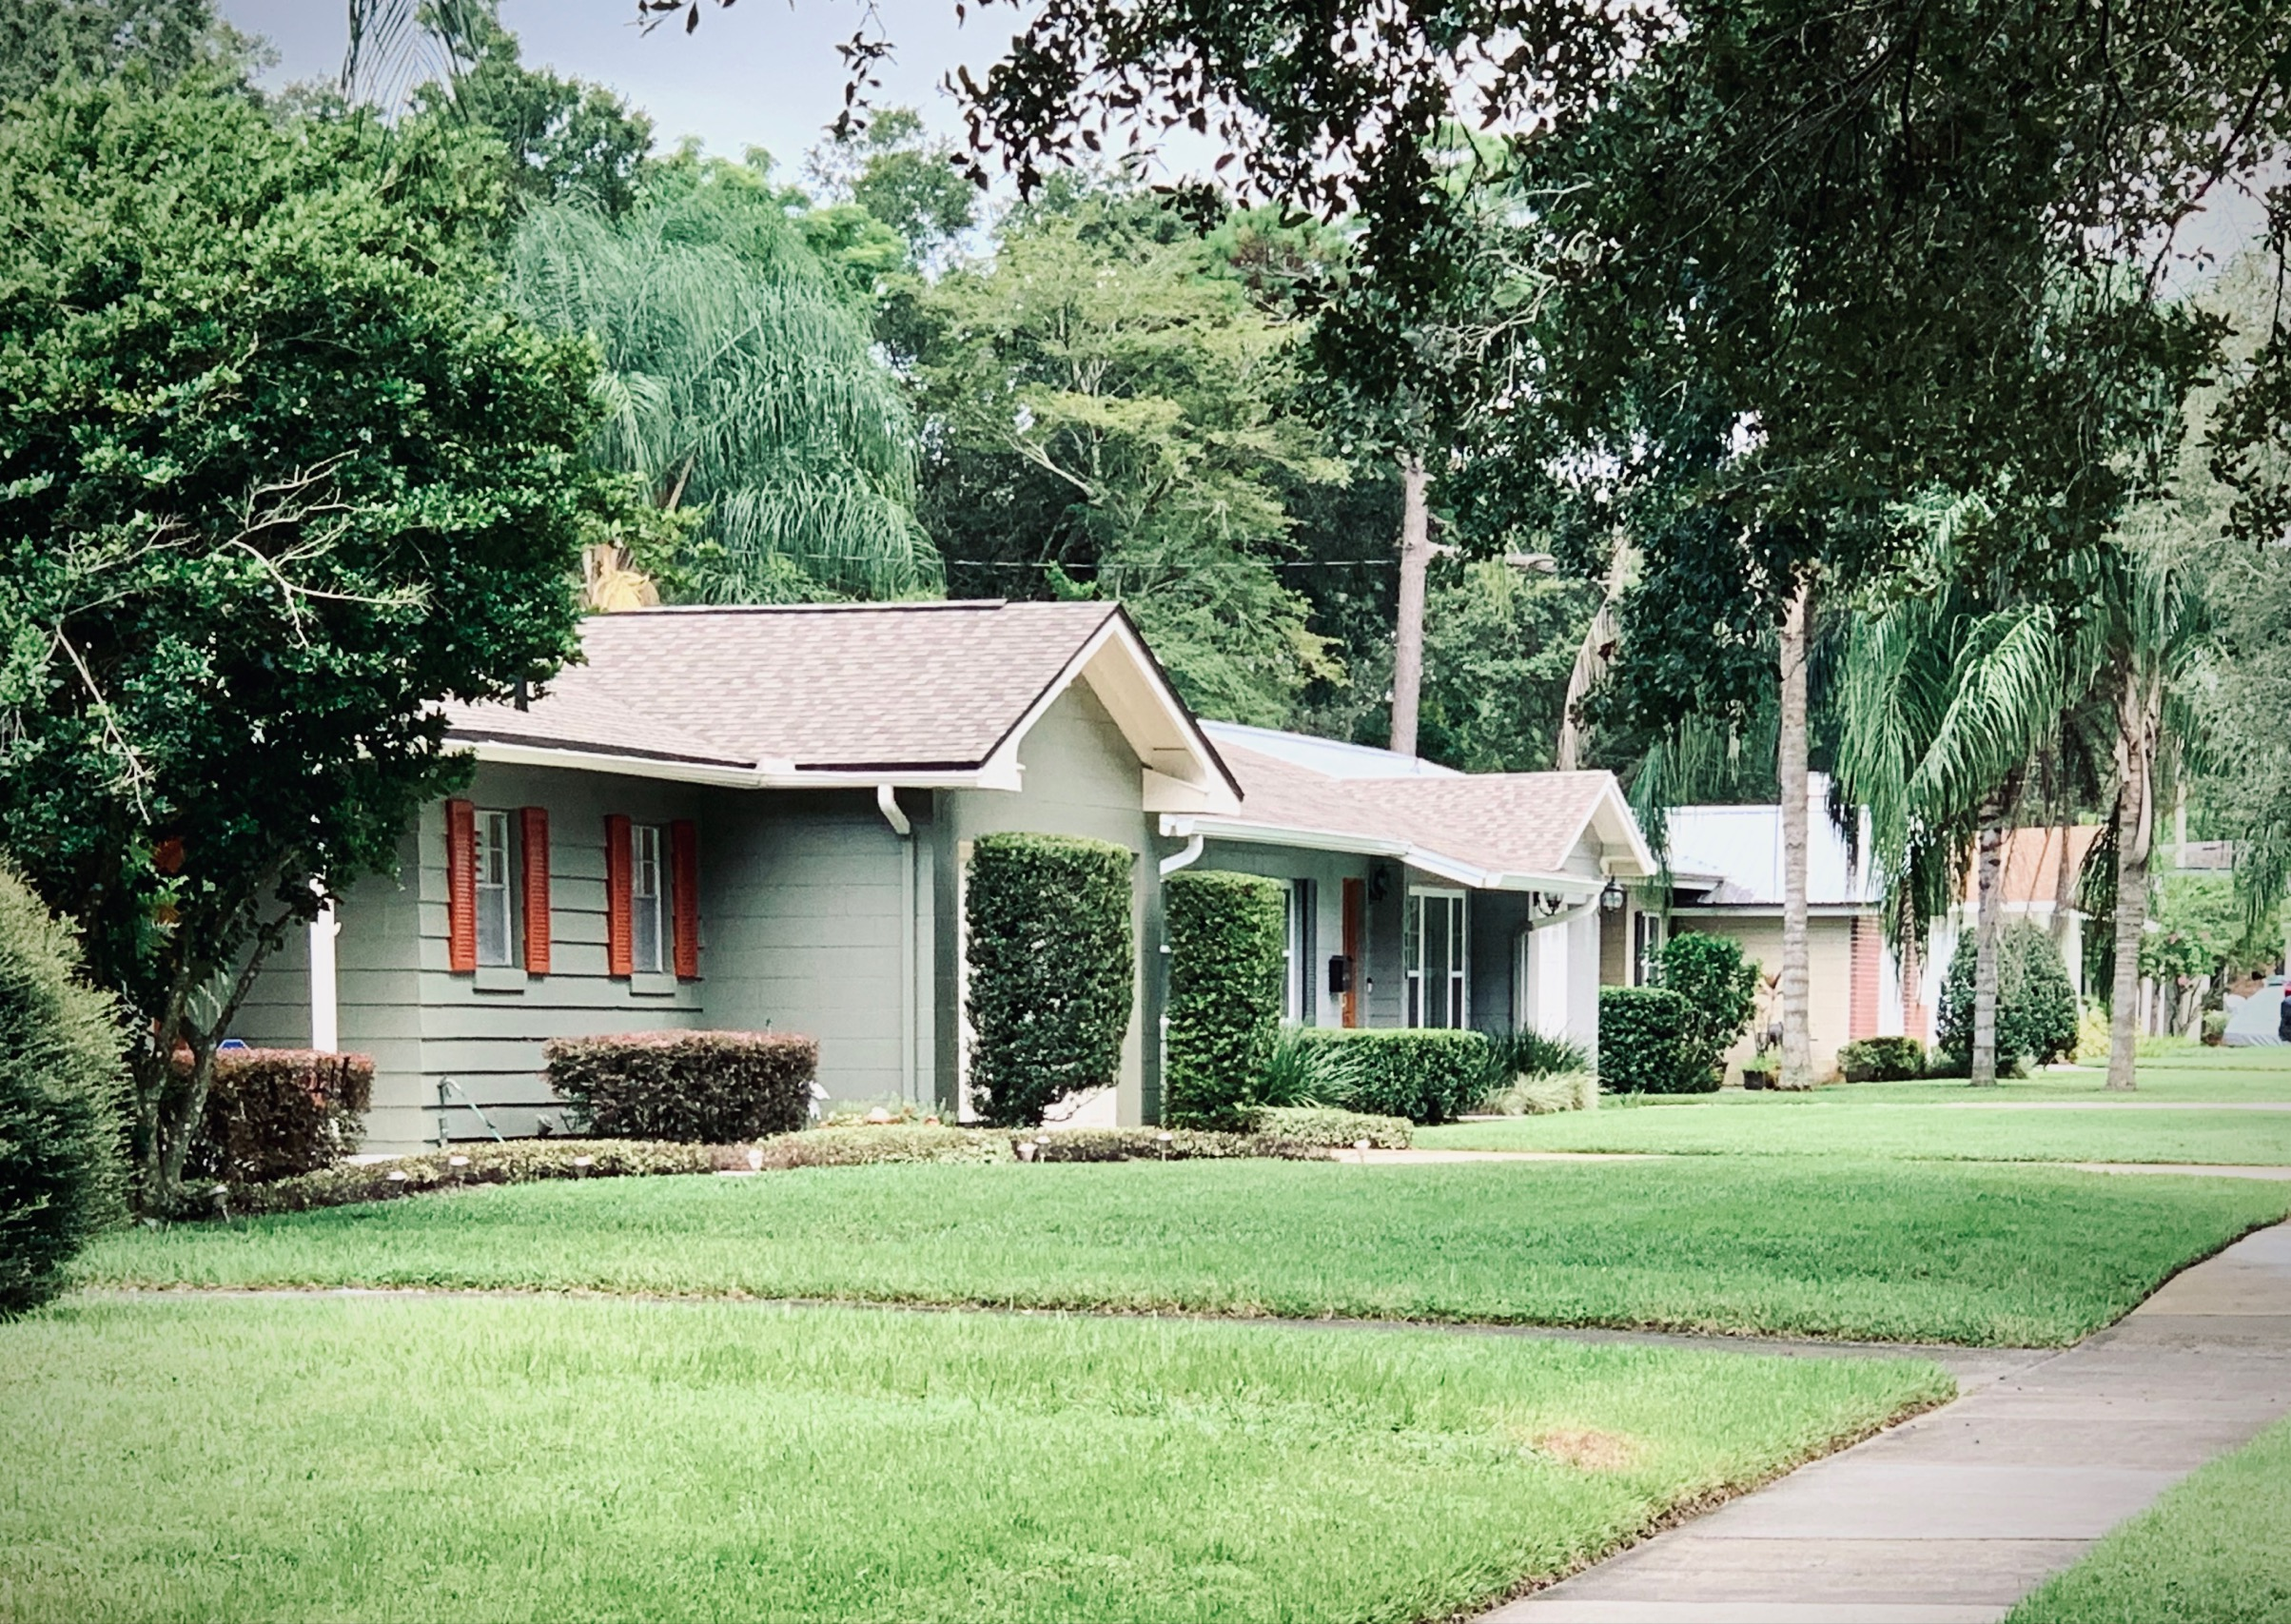 Homes in Winter Park, Fla.